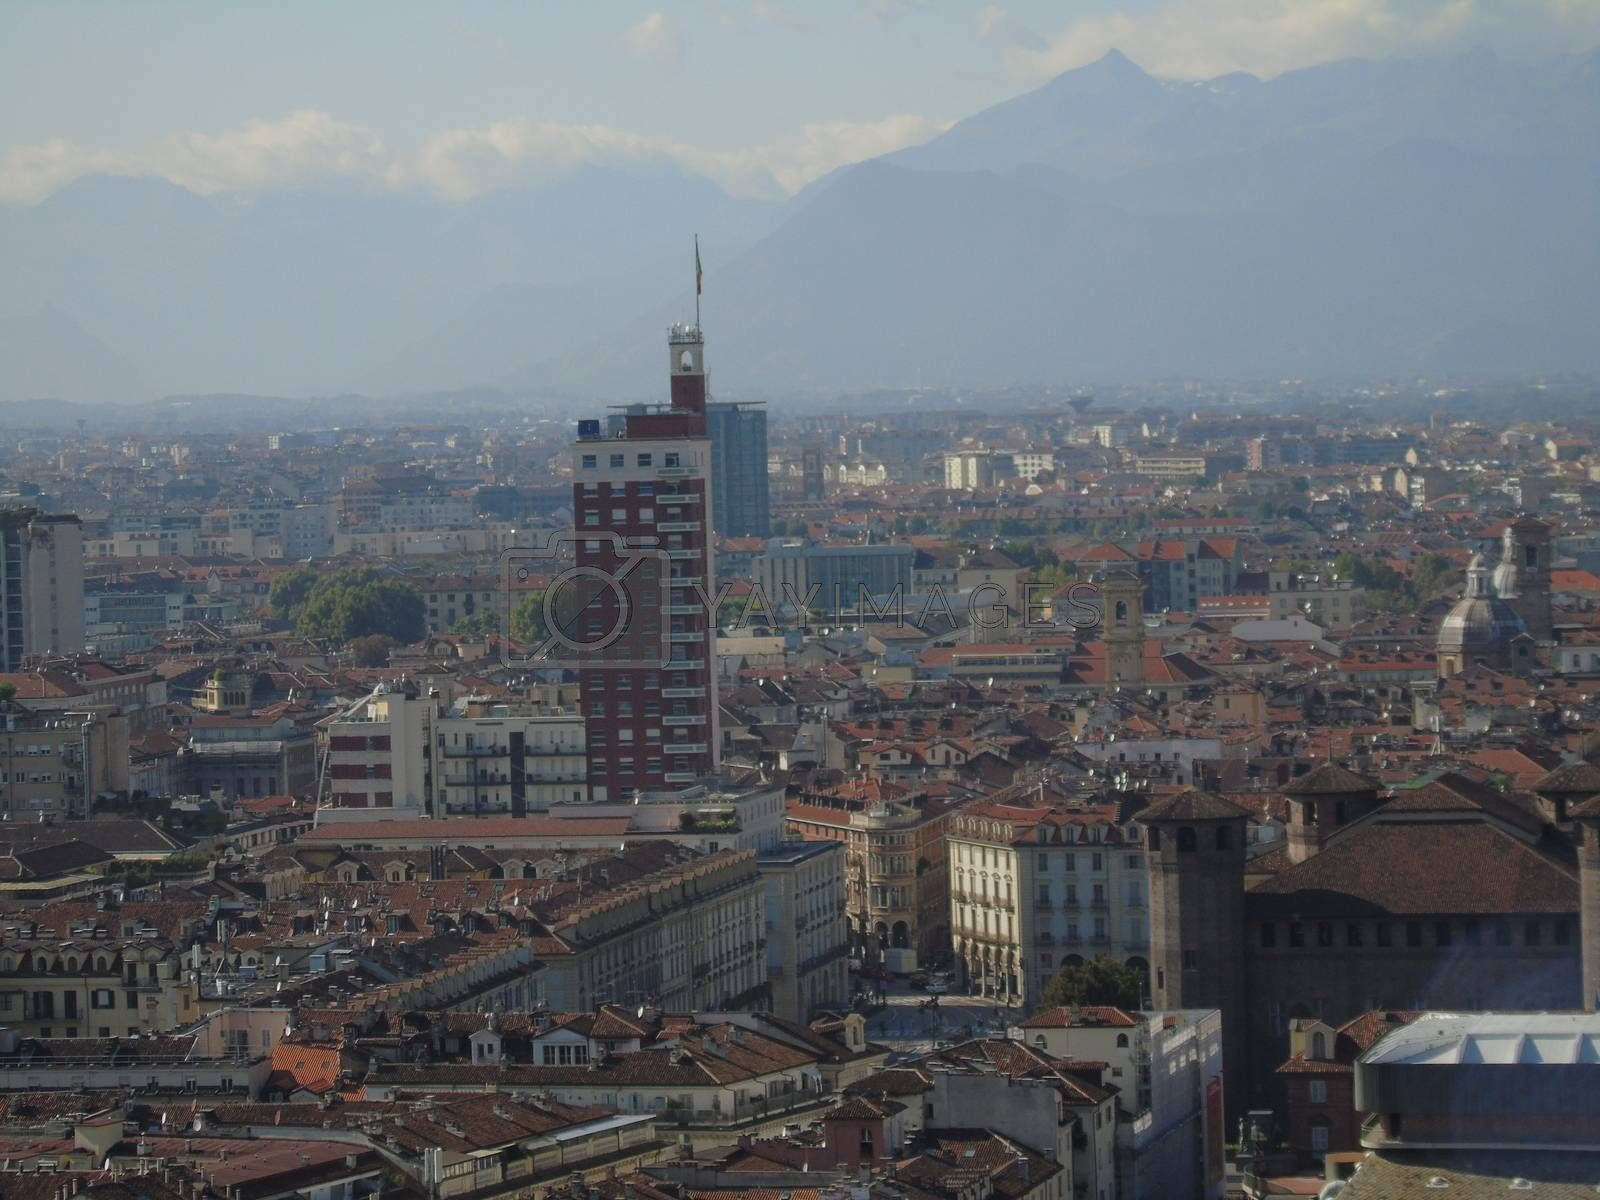 Turin, Italy - 06/06/2020: Beautiful panoramic view from Mole Antoneliana to the city of Turin in summer days with clear blue sky and the alps in the background.